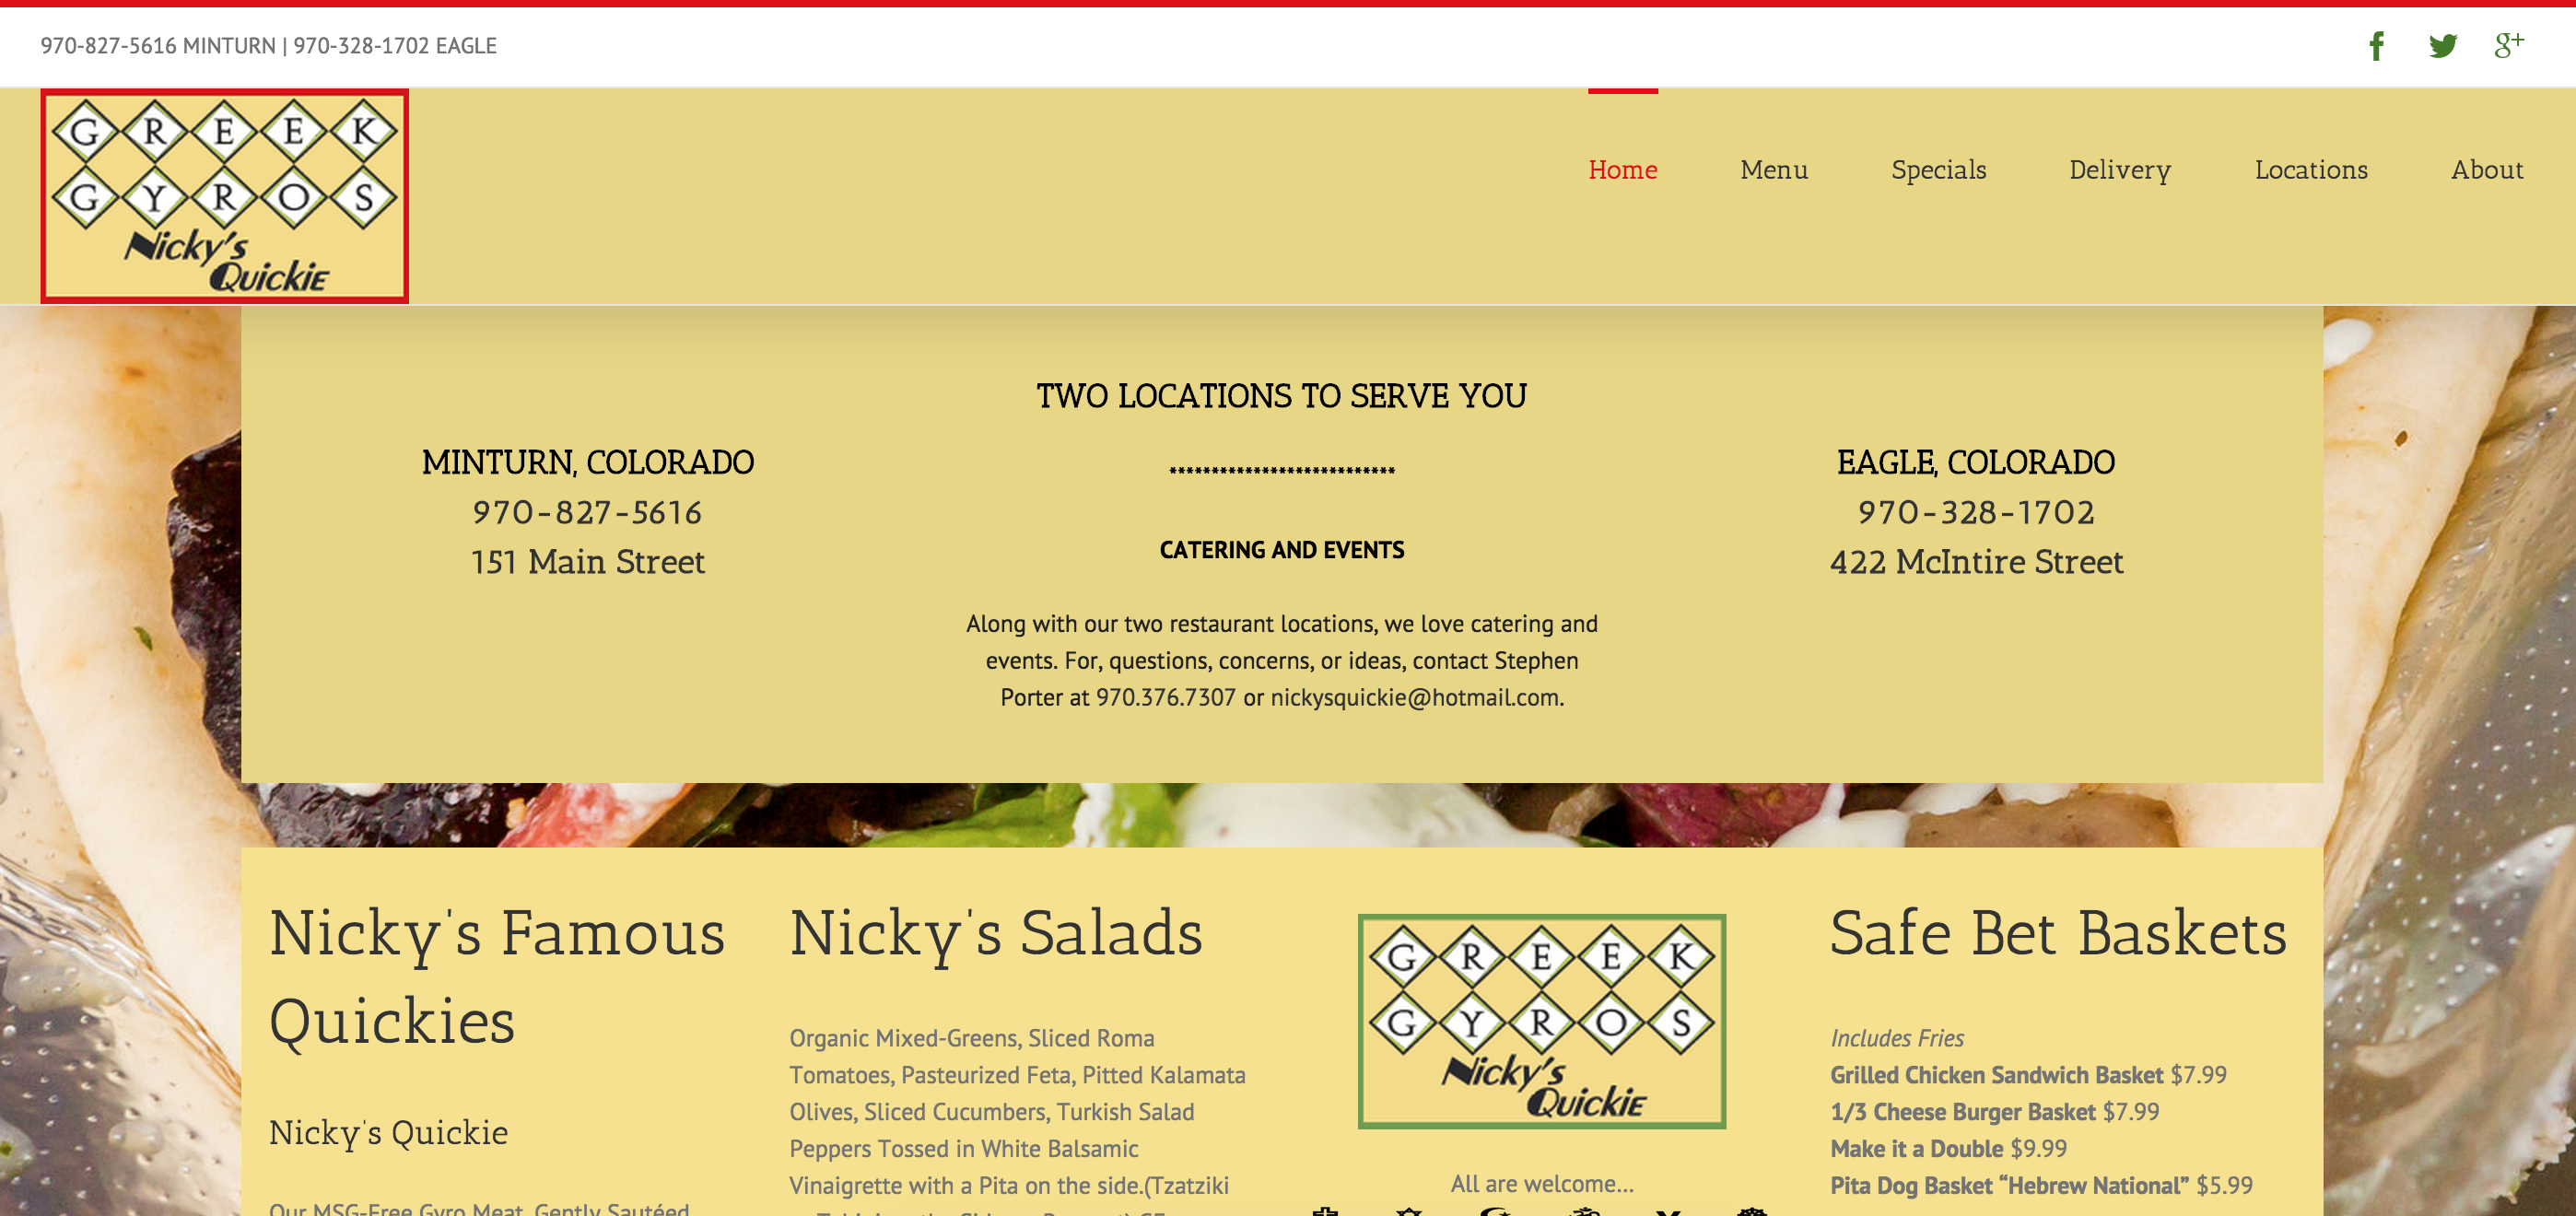 Nickys-Quickie-website